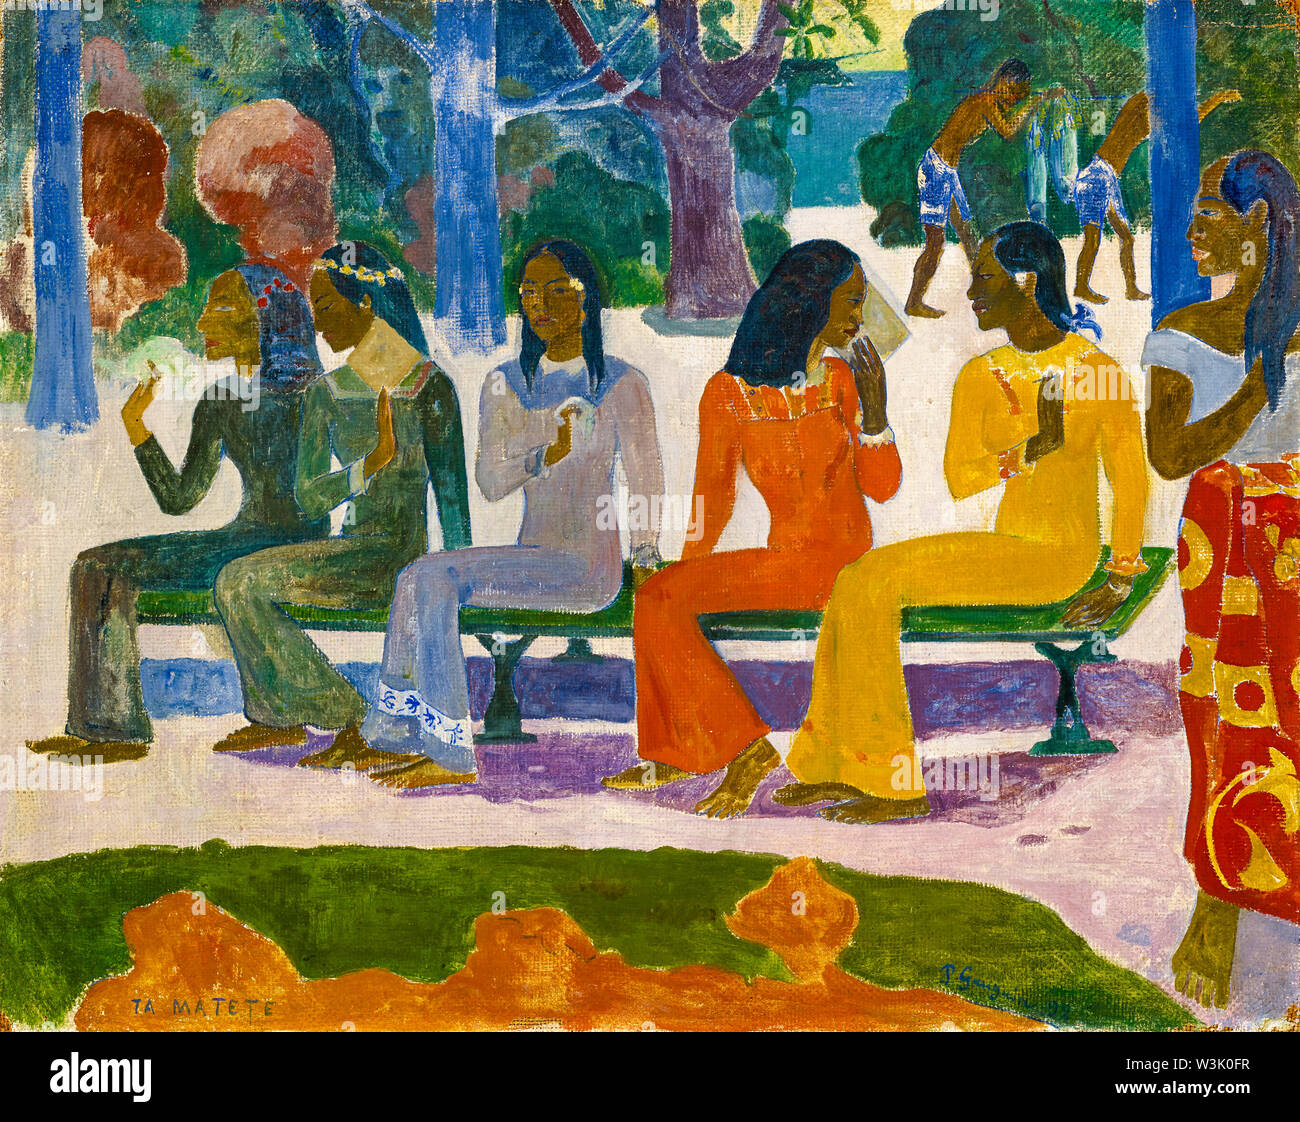 Paul Gauguin, Ta Matete, We Shall Not Go to the Market Today, painting, 1892 - Stock Image